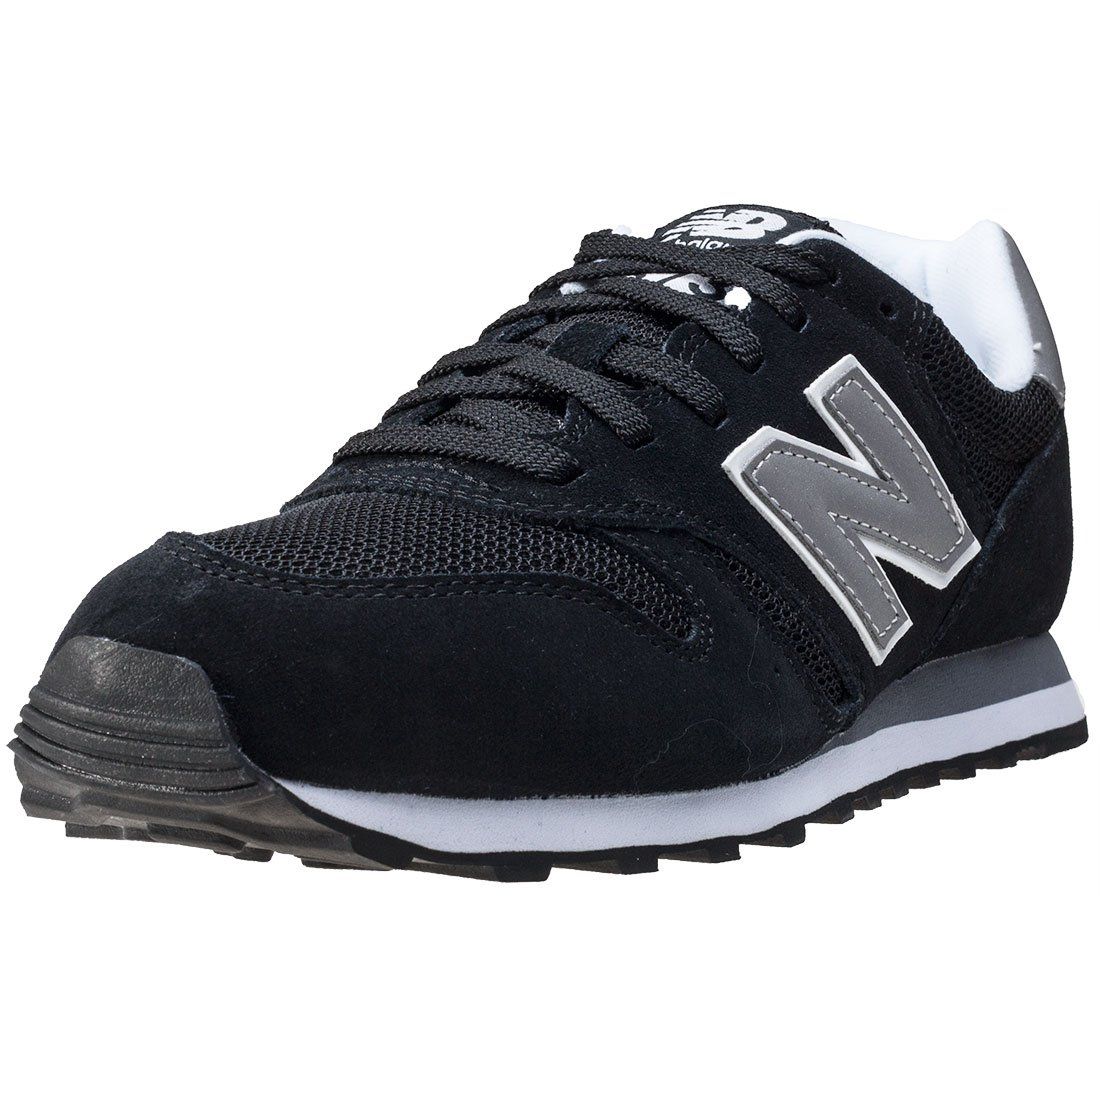 441174baea0f3 New Balance Men's 373 Core Trainers